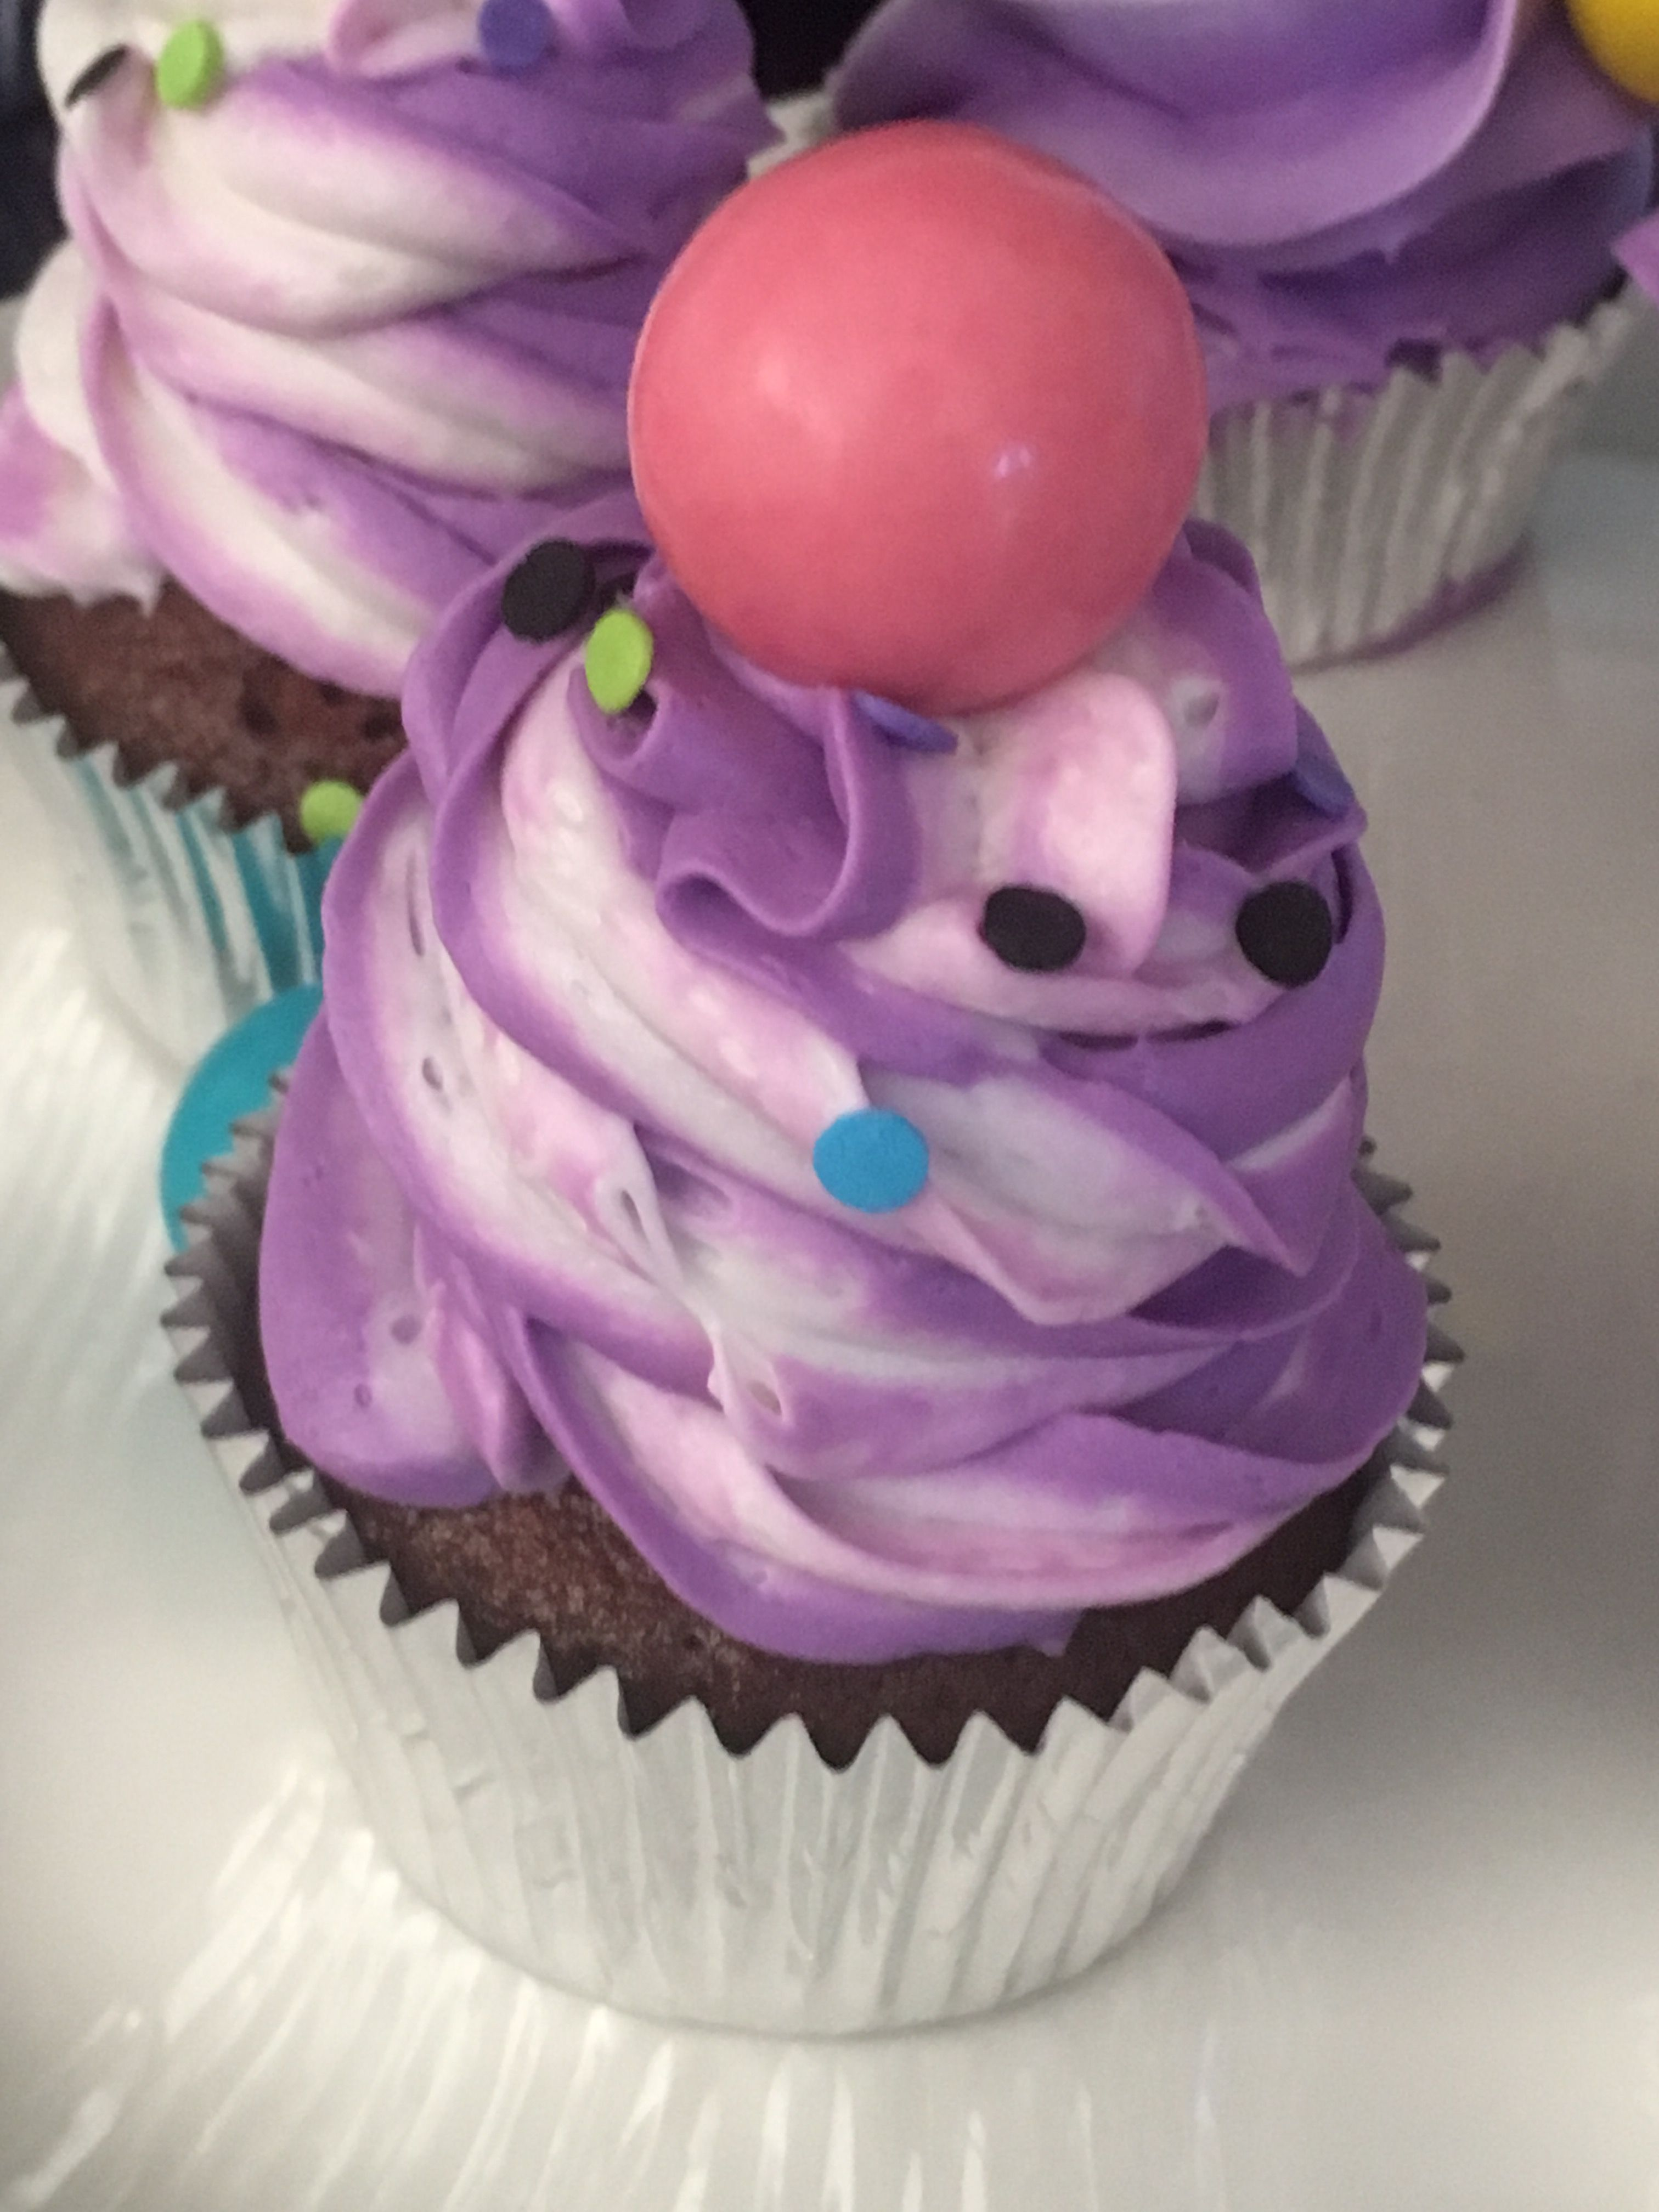 Chocolate cupcakes filled with marshmallow cream and topped with purple and white marshmallow frosting and a gum ball